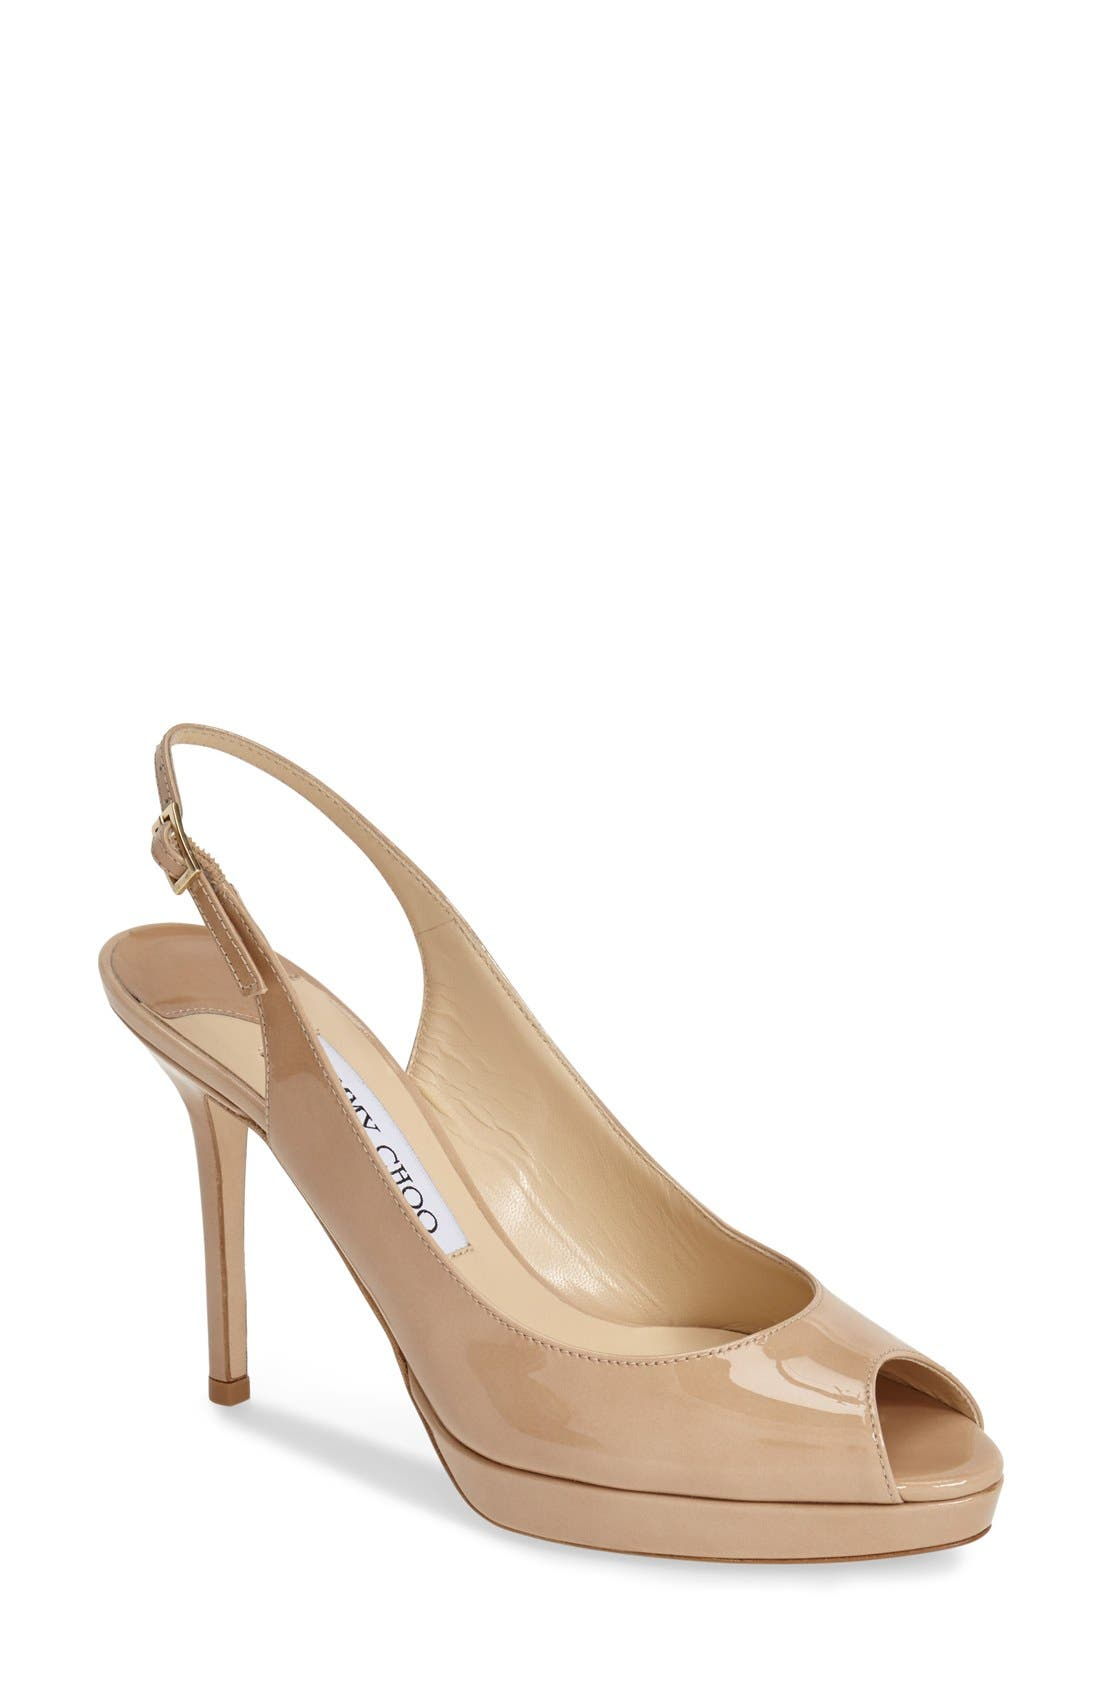 Main Image - Jimmy Choo 'Nova' Patent Leather Slingback Pump (Women)